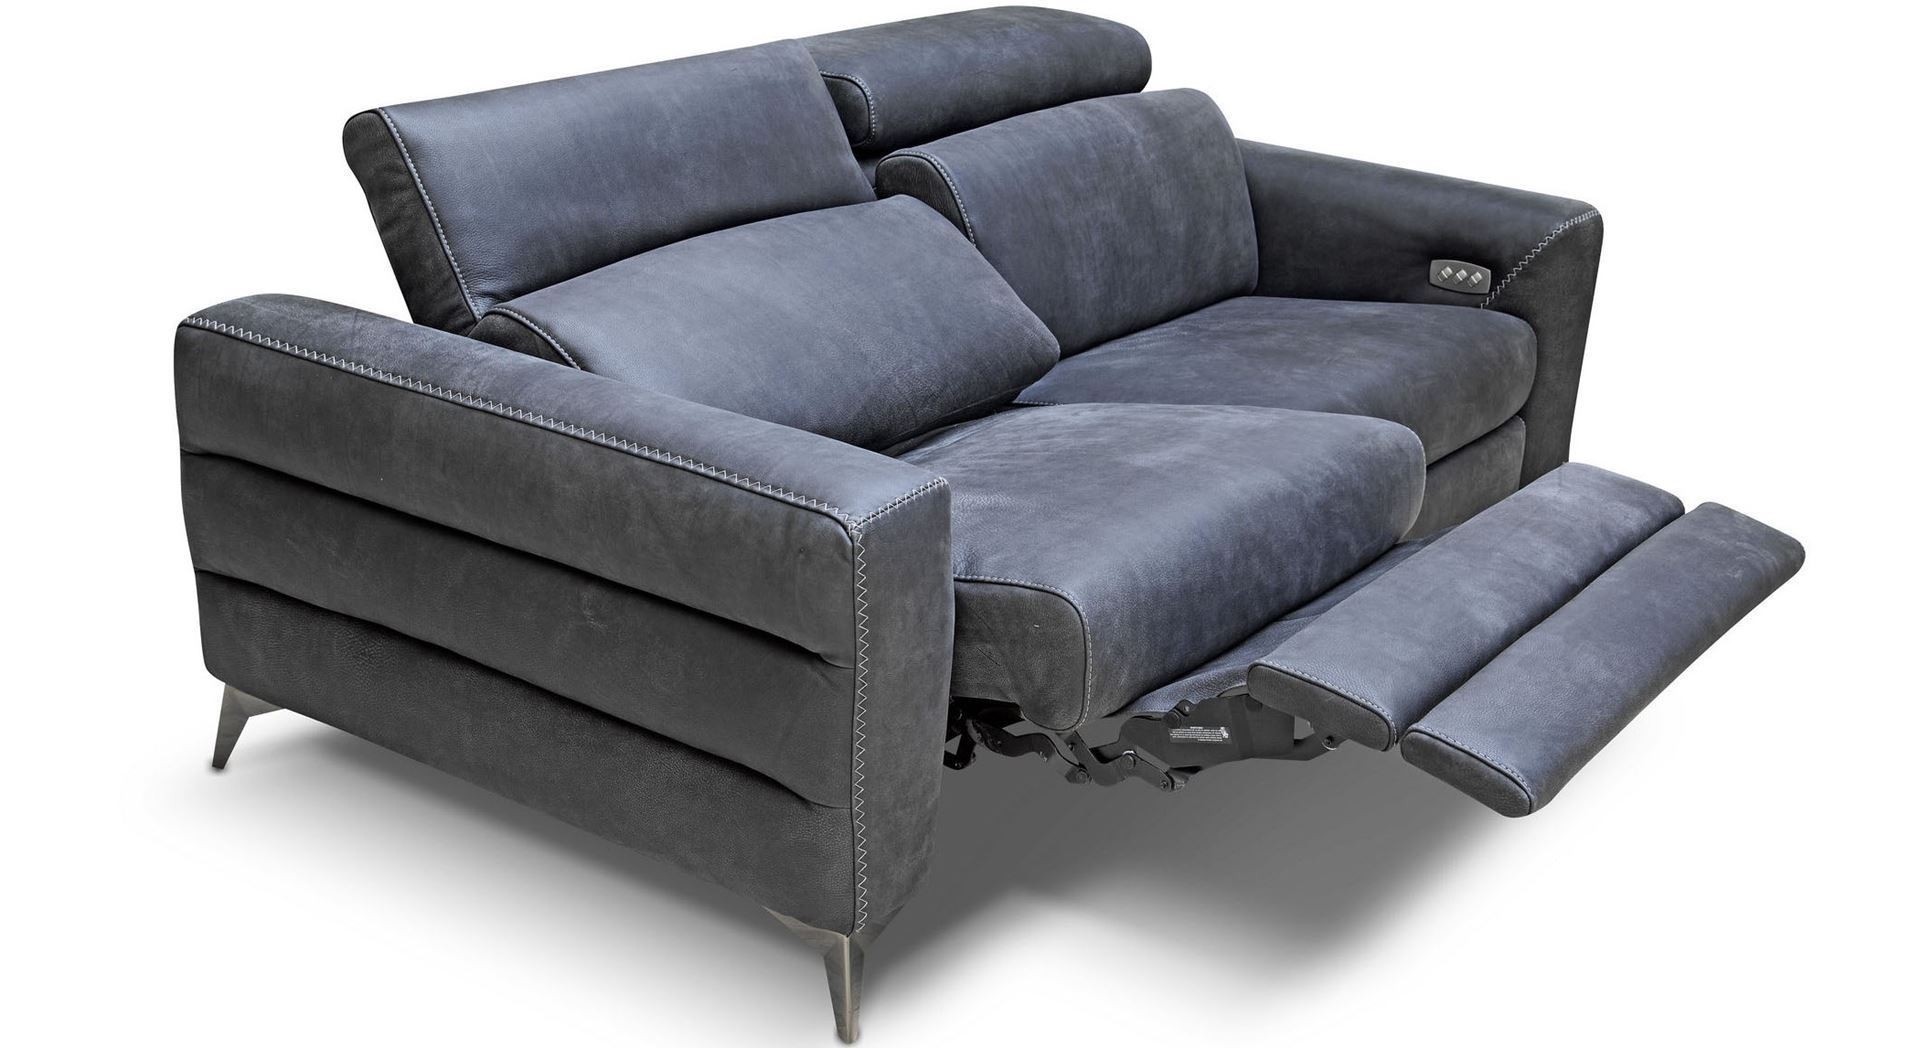 Fosters Furniture Bracci Ermes Sofa 70